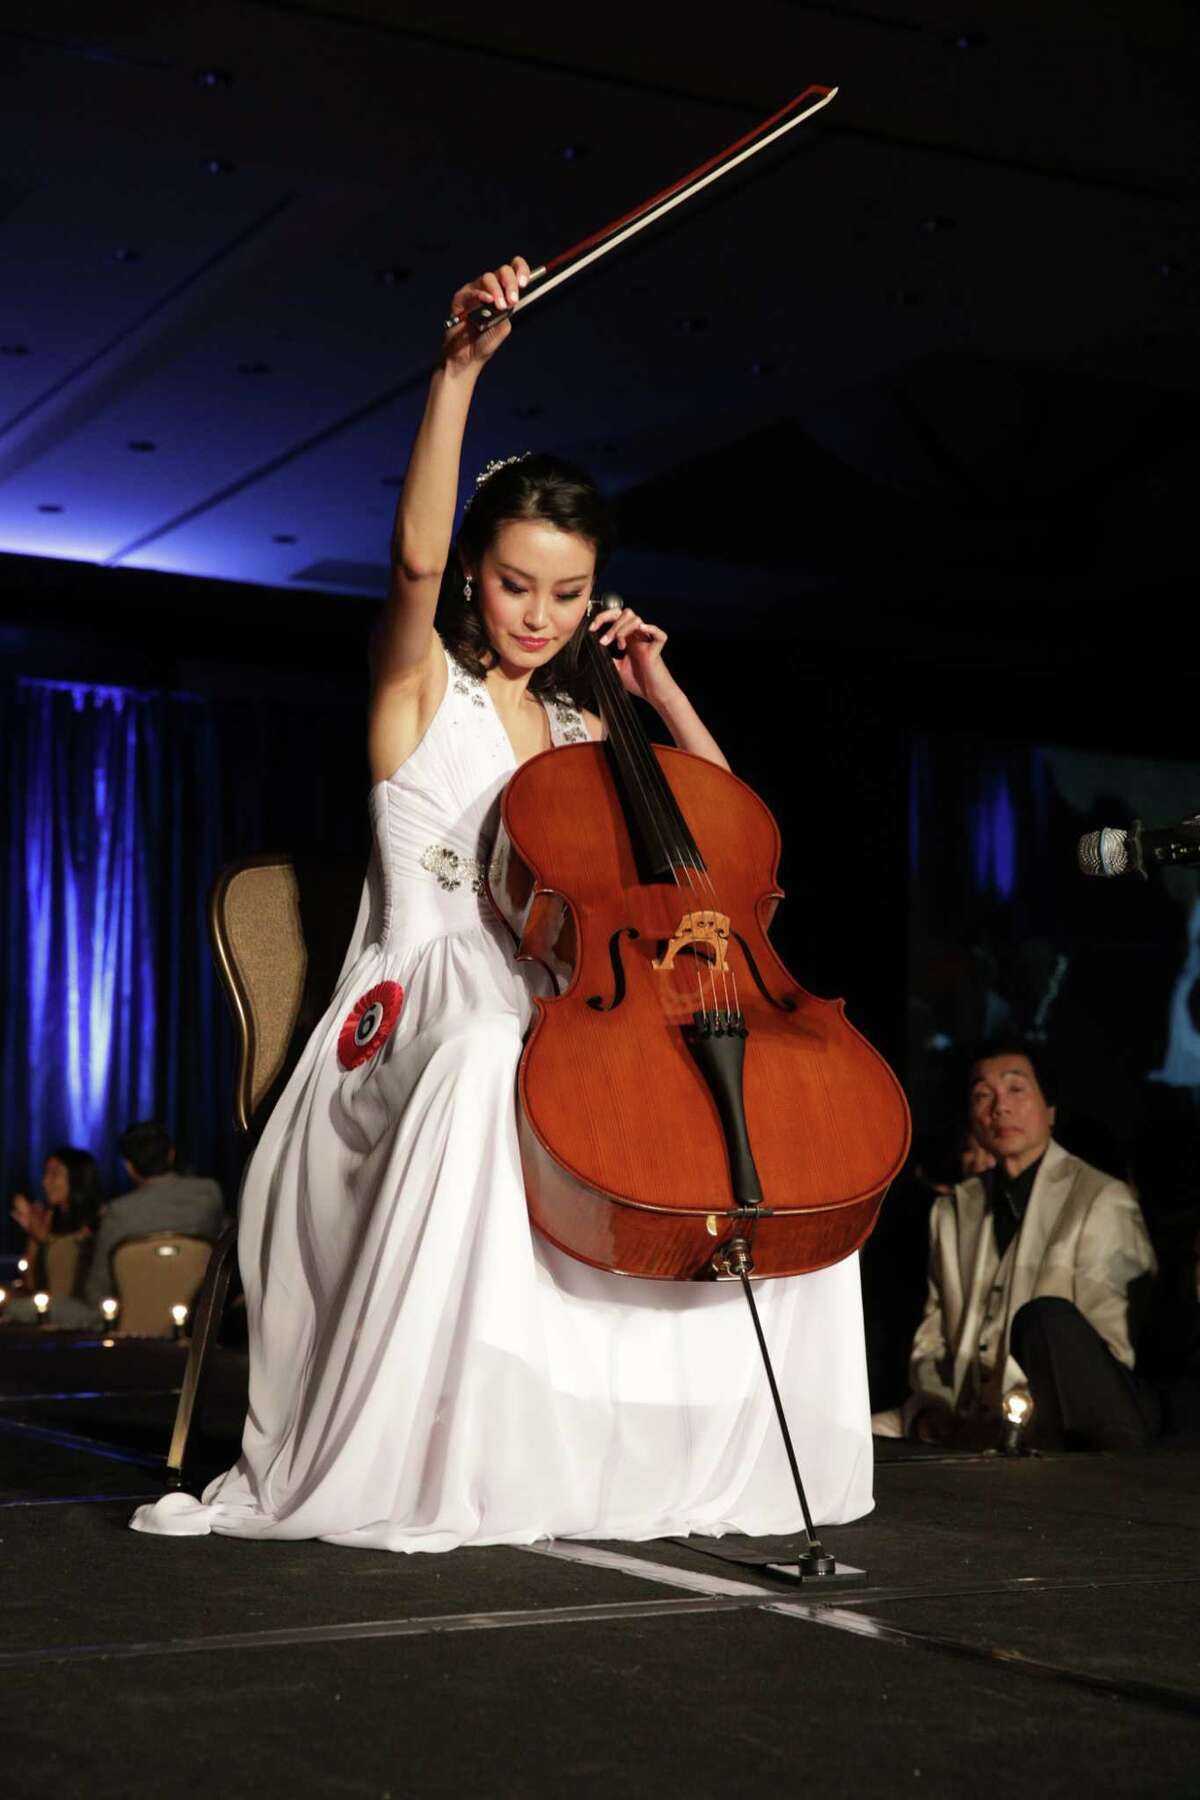 Eventual Miss Chinatown Houston winner Karen Yen performs on the cello during the 48th Annual Miss Chinatown Houston Scholarship Pageant, Saturday, July 21, 2018.